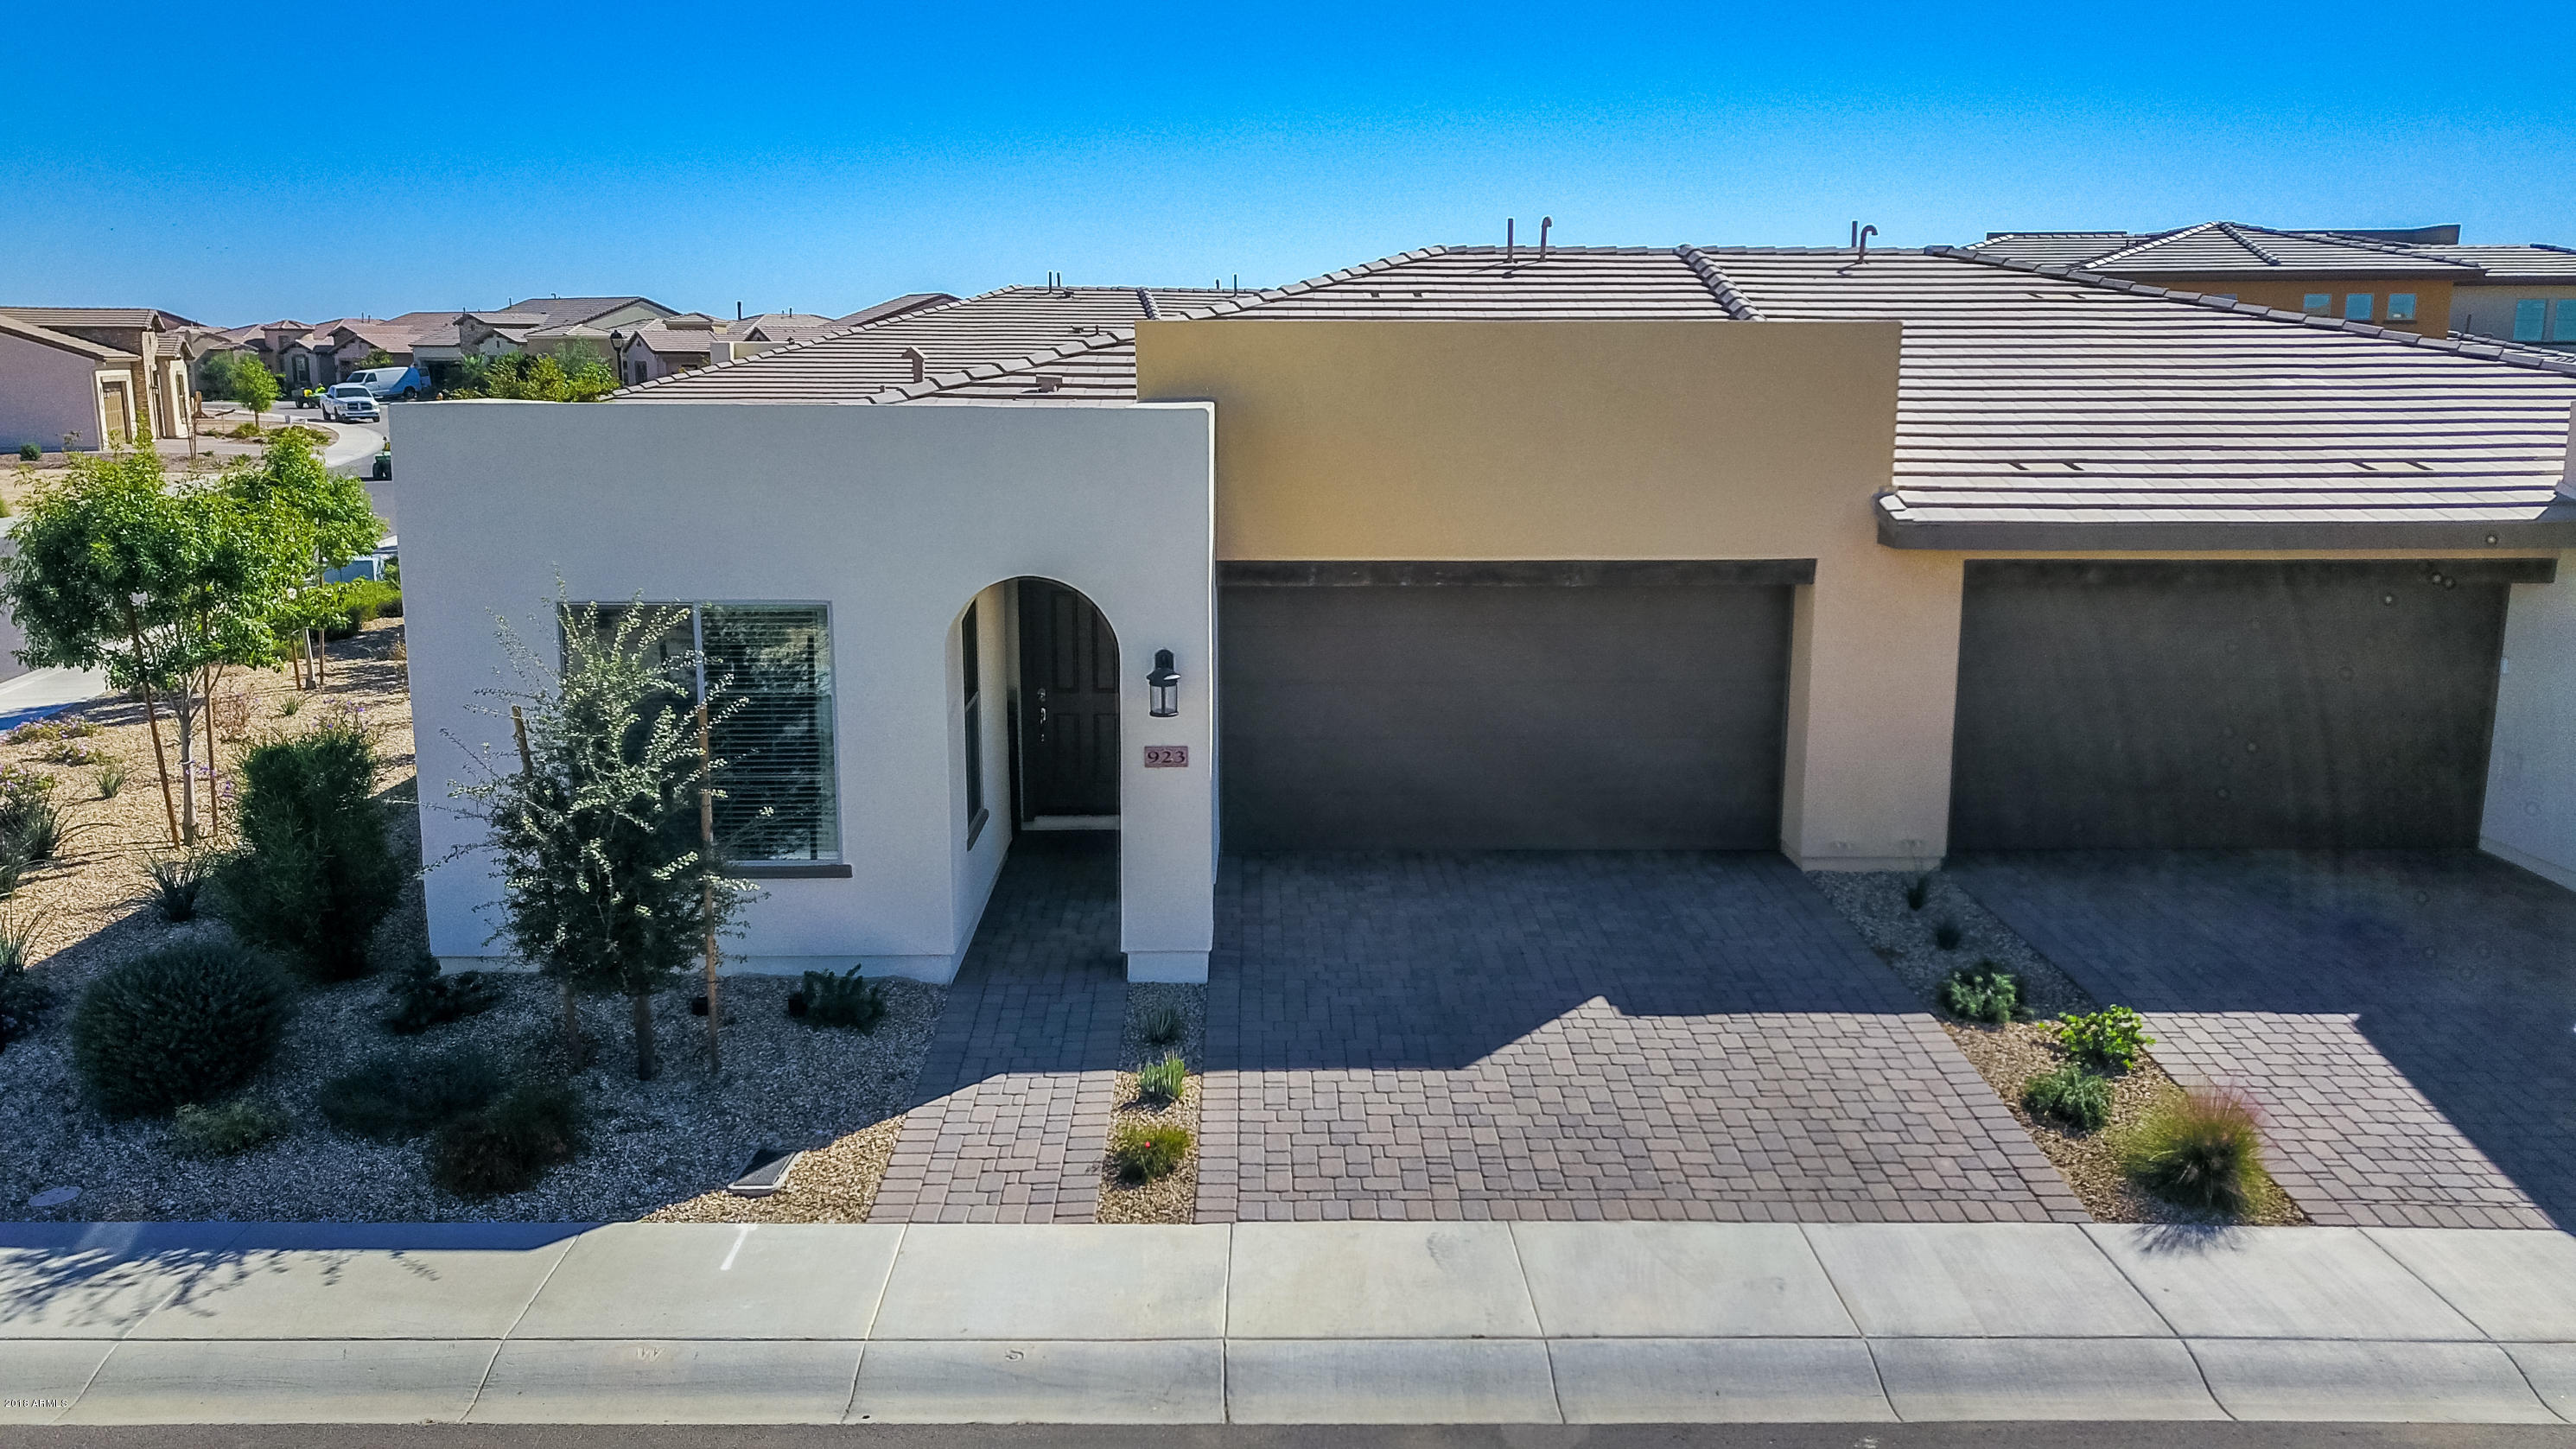 Photo of 923 E CEREUS Pass, San Tan Valley, AZ 85140